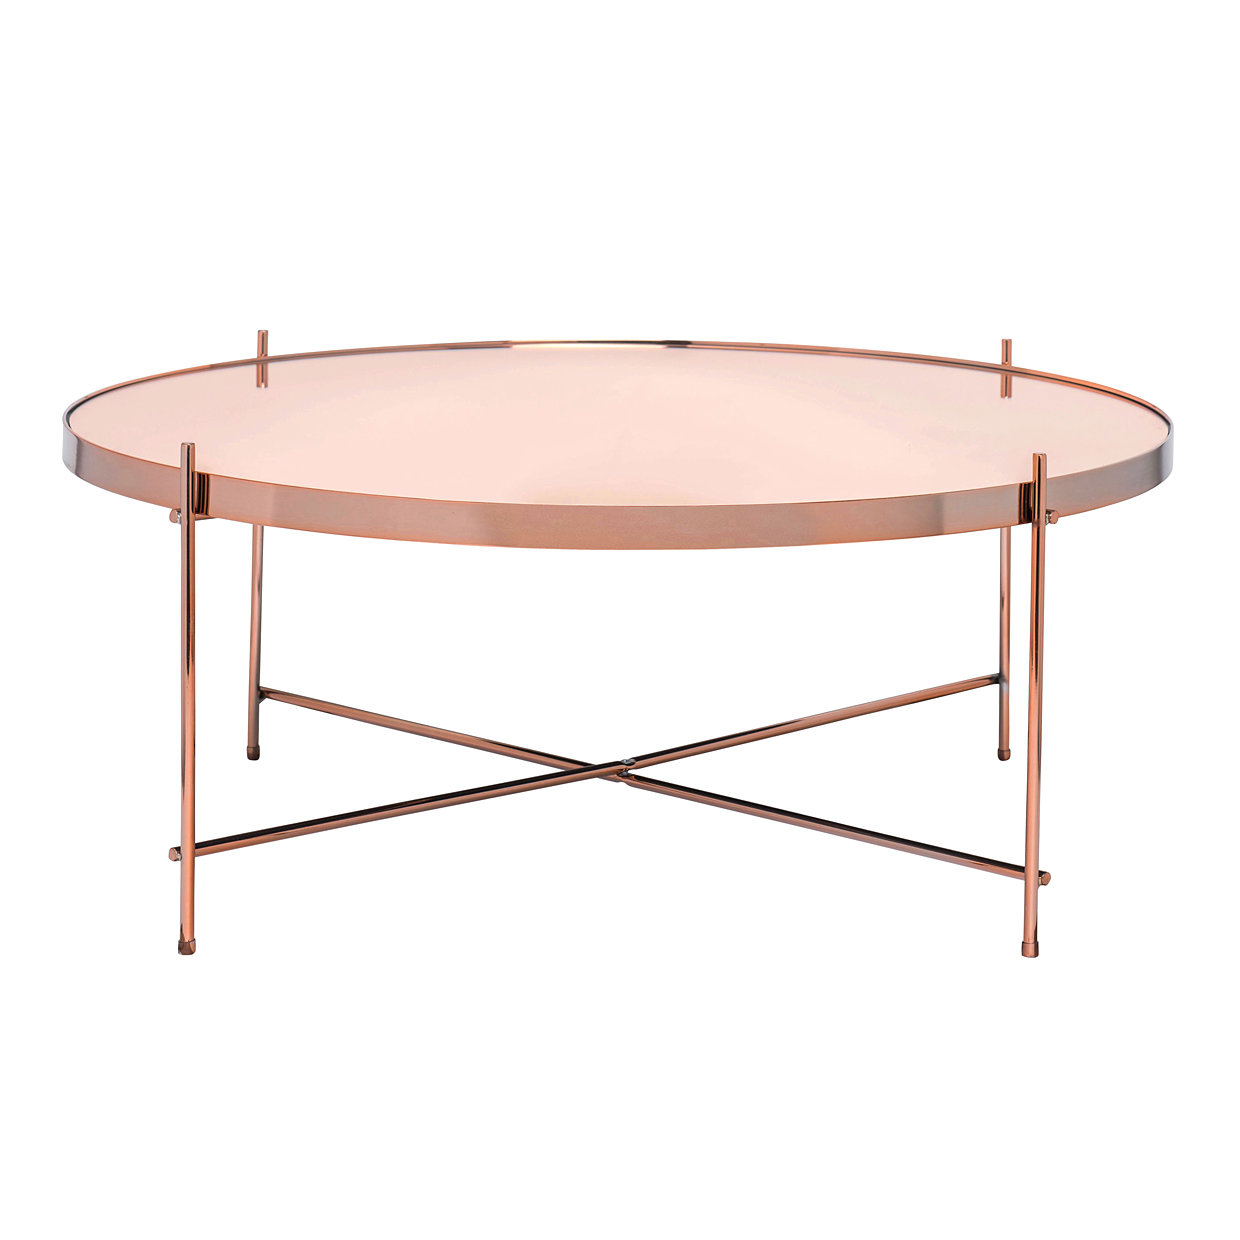 Wayfair.co.uk Regarding Exton Cocktail Tables (Gallery 16 of 20)